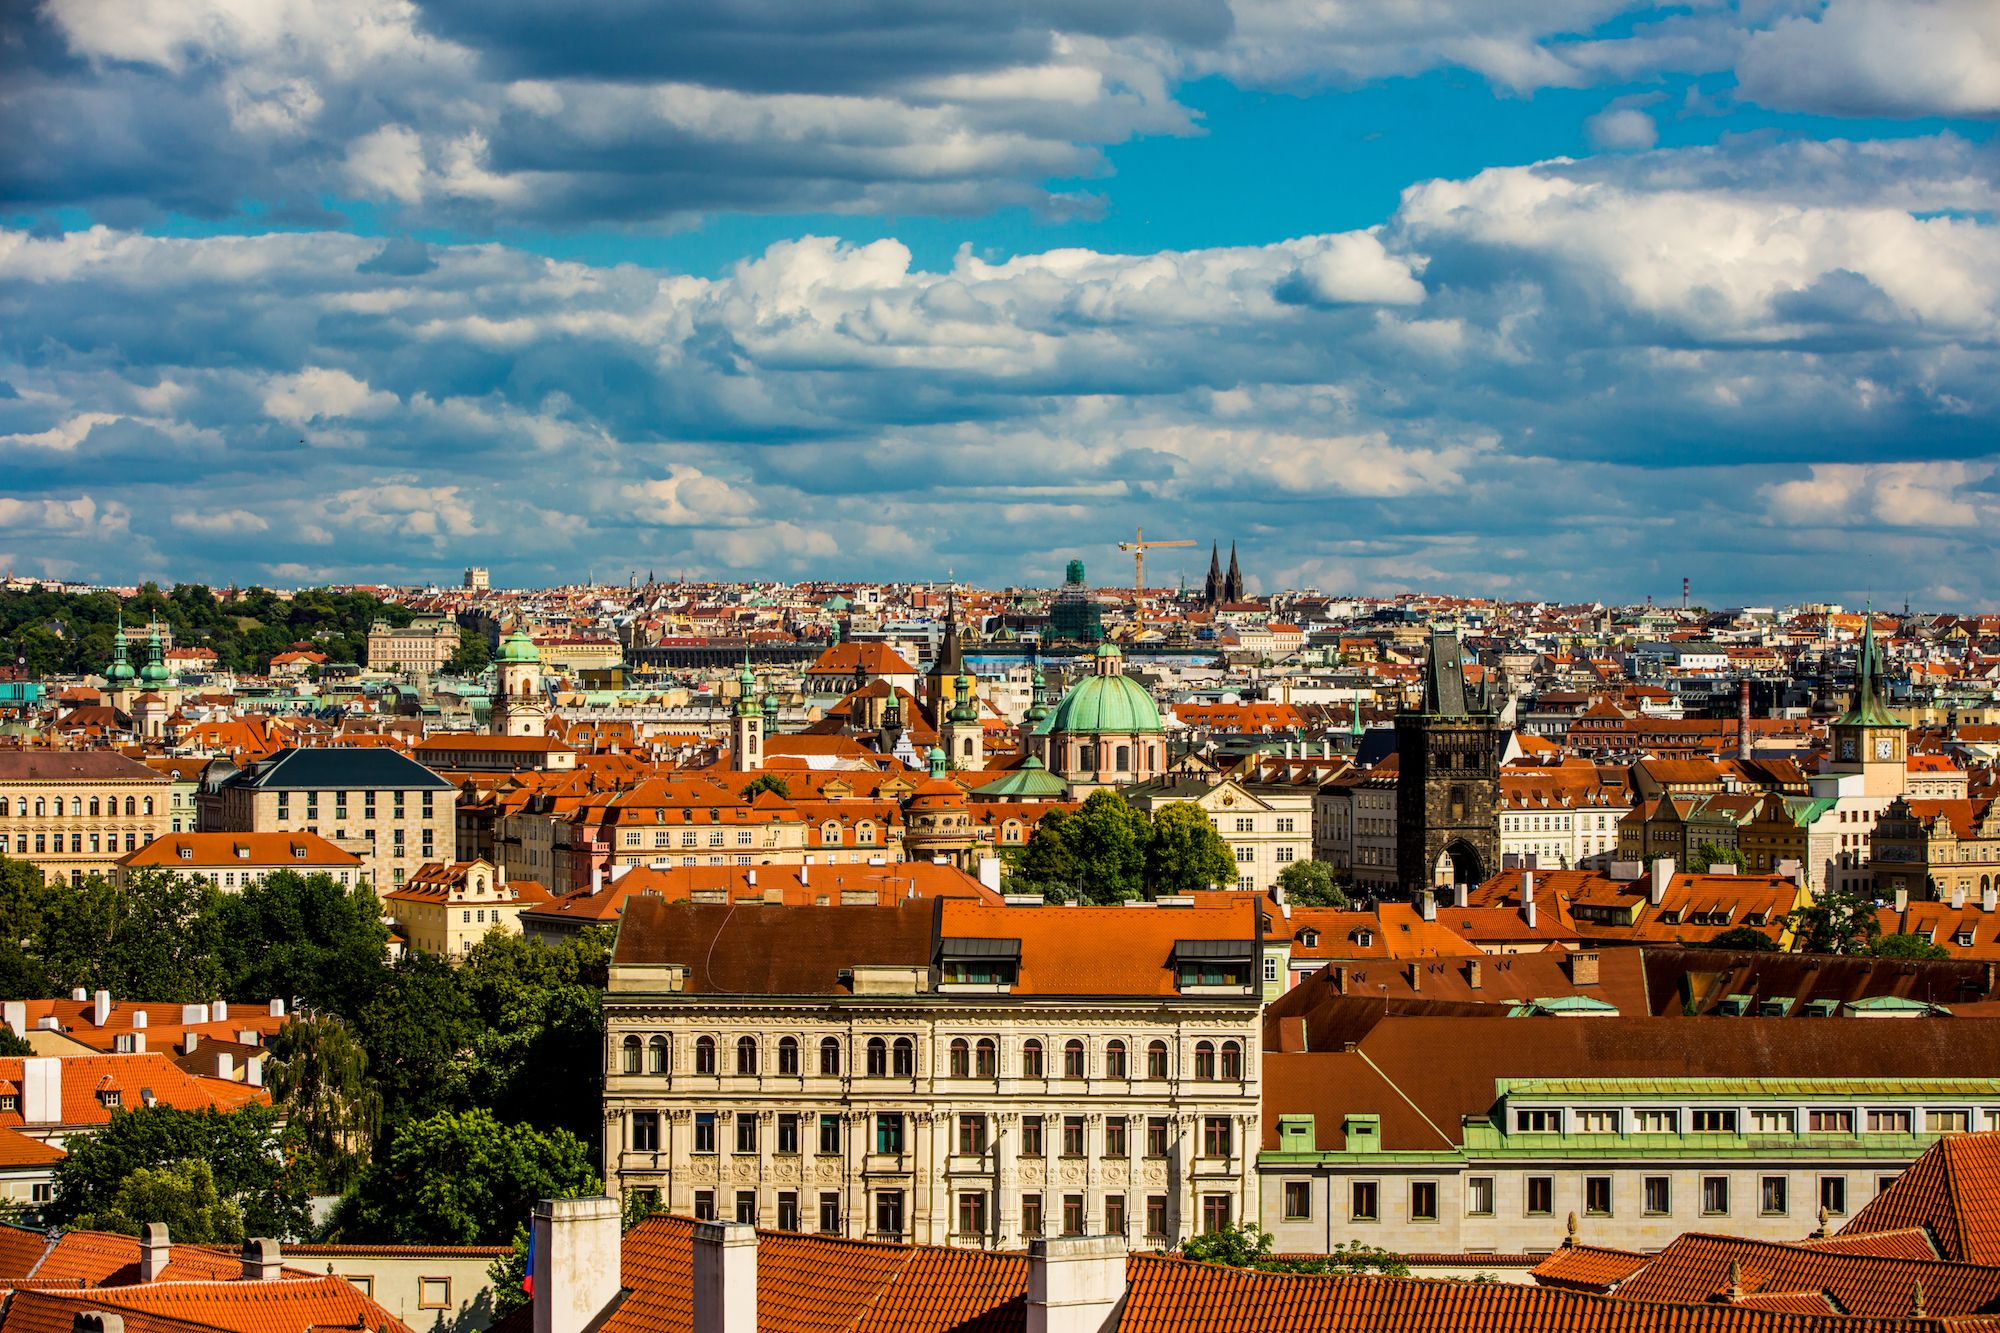 Prague holds so many wonderful mysteries unique activities to do so here are the top 10 things to discover uncover while in prague